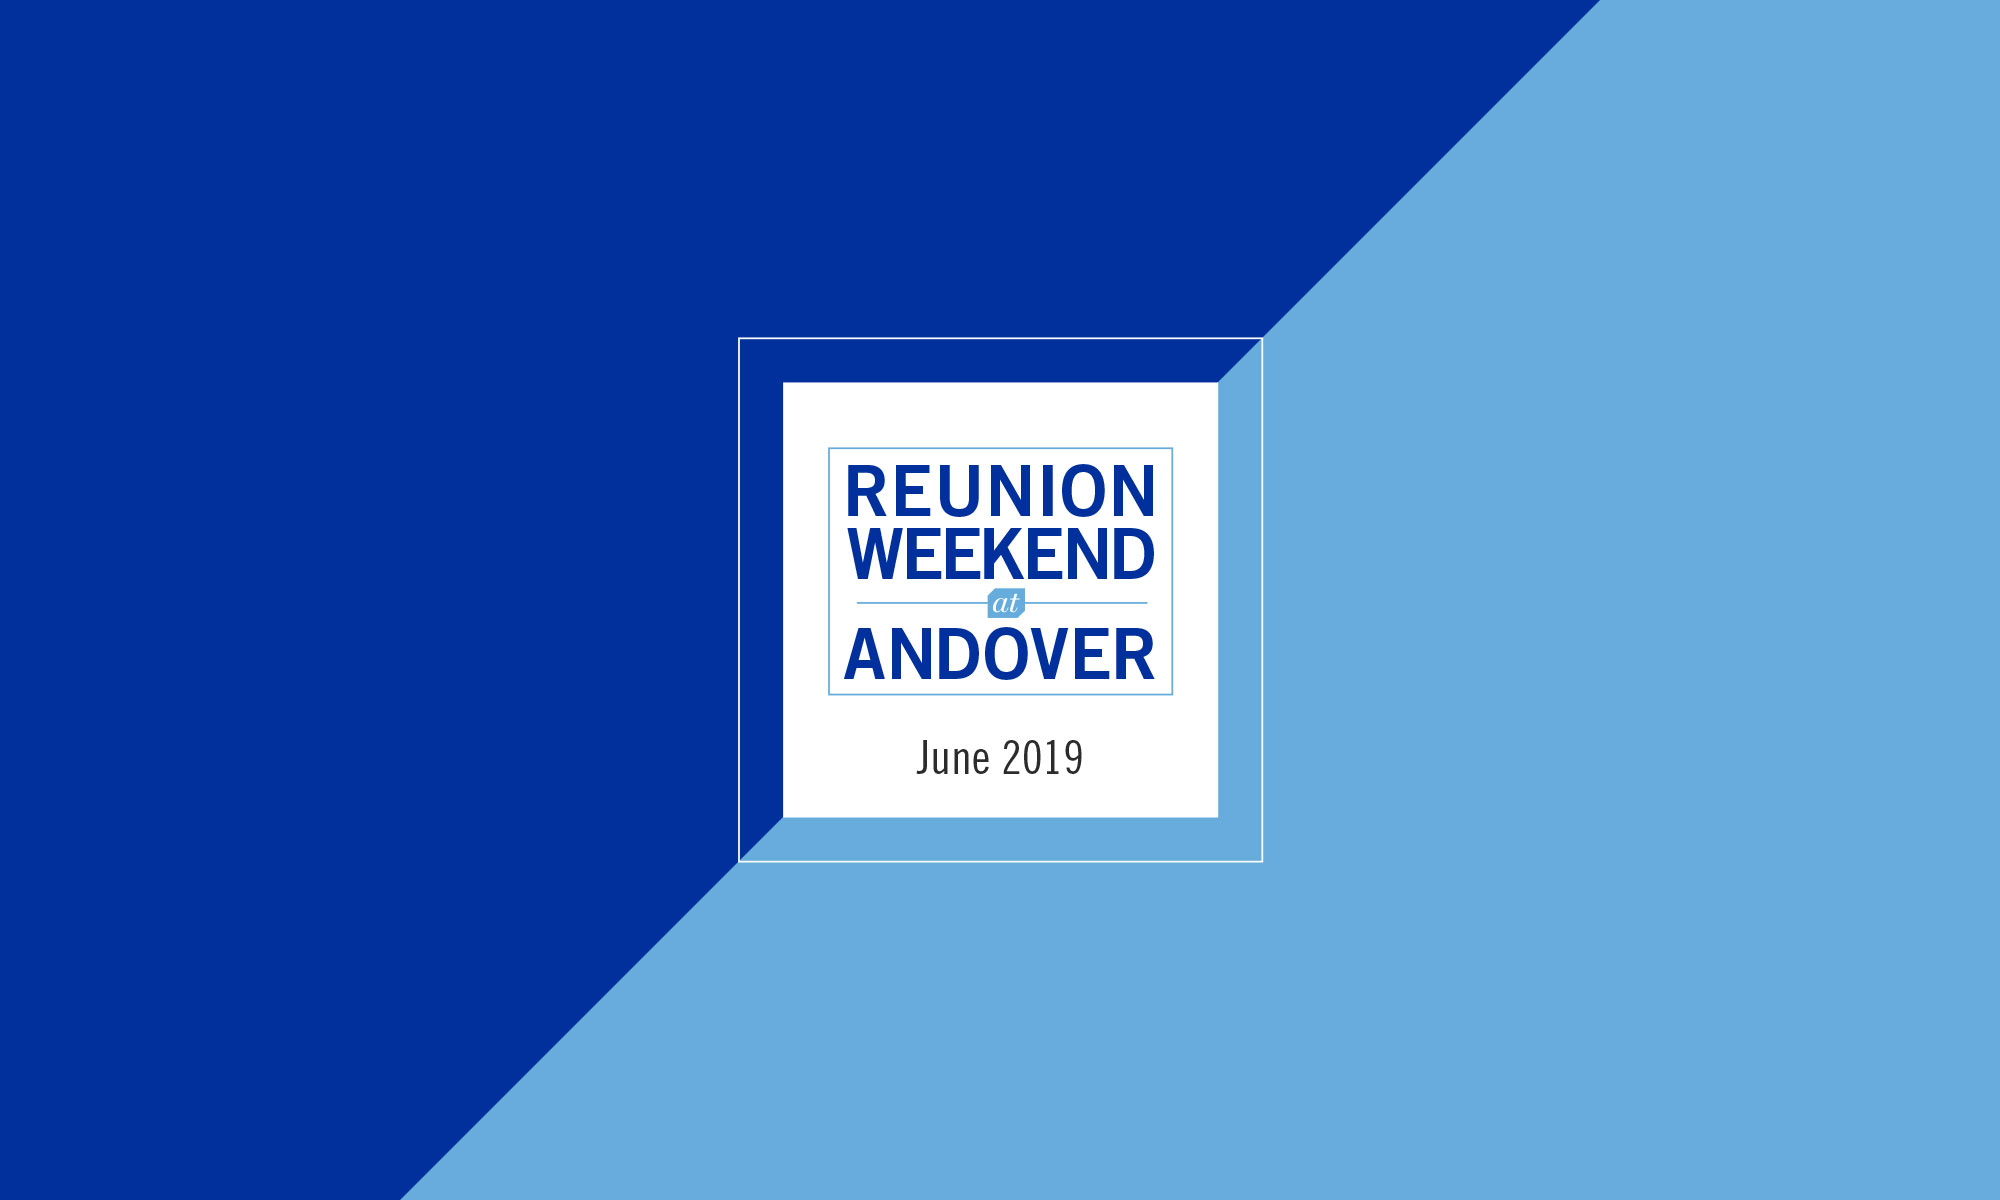 Reunion Weekend at Andover